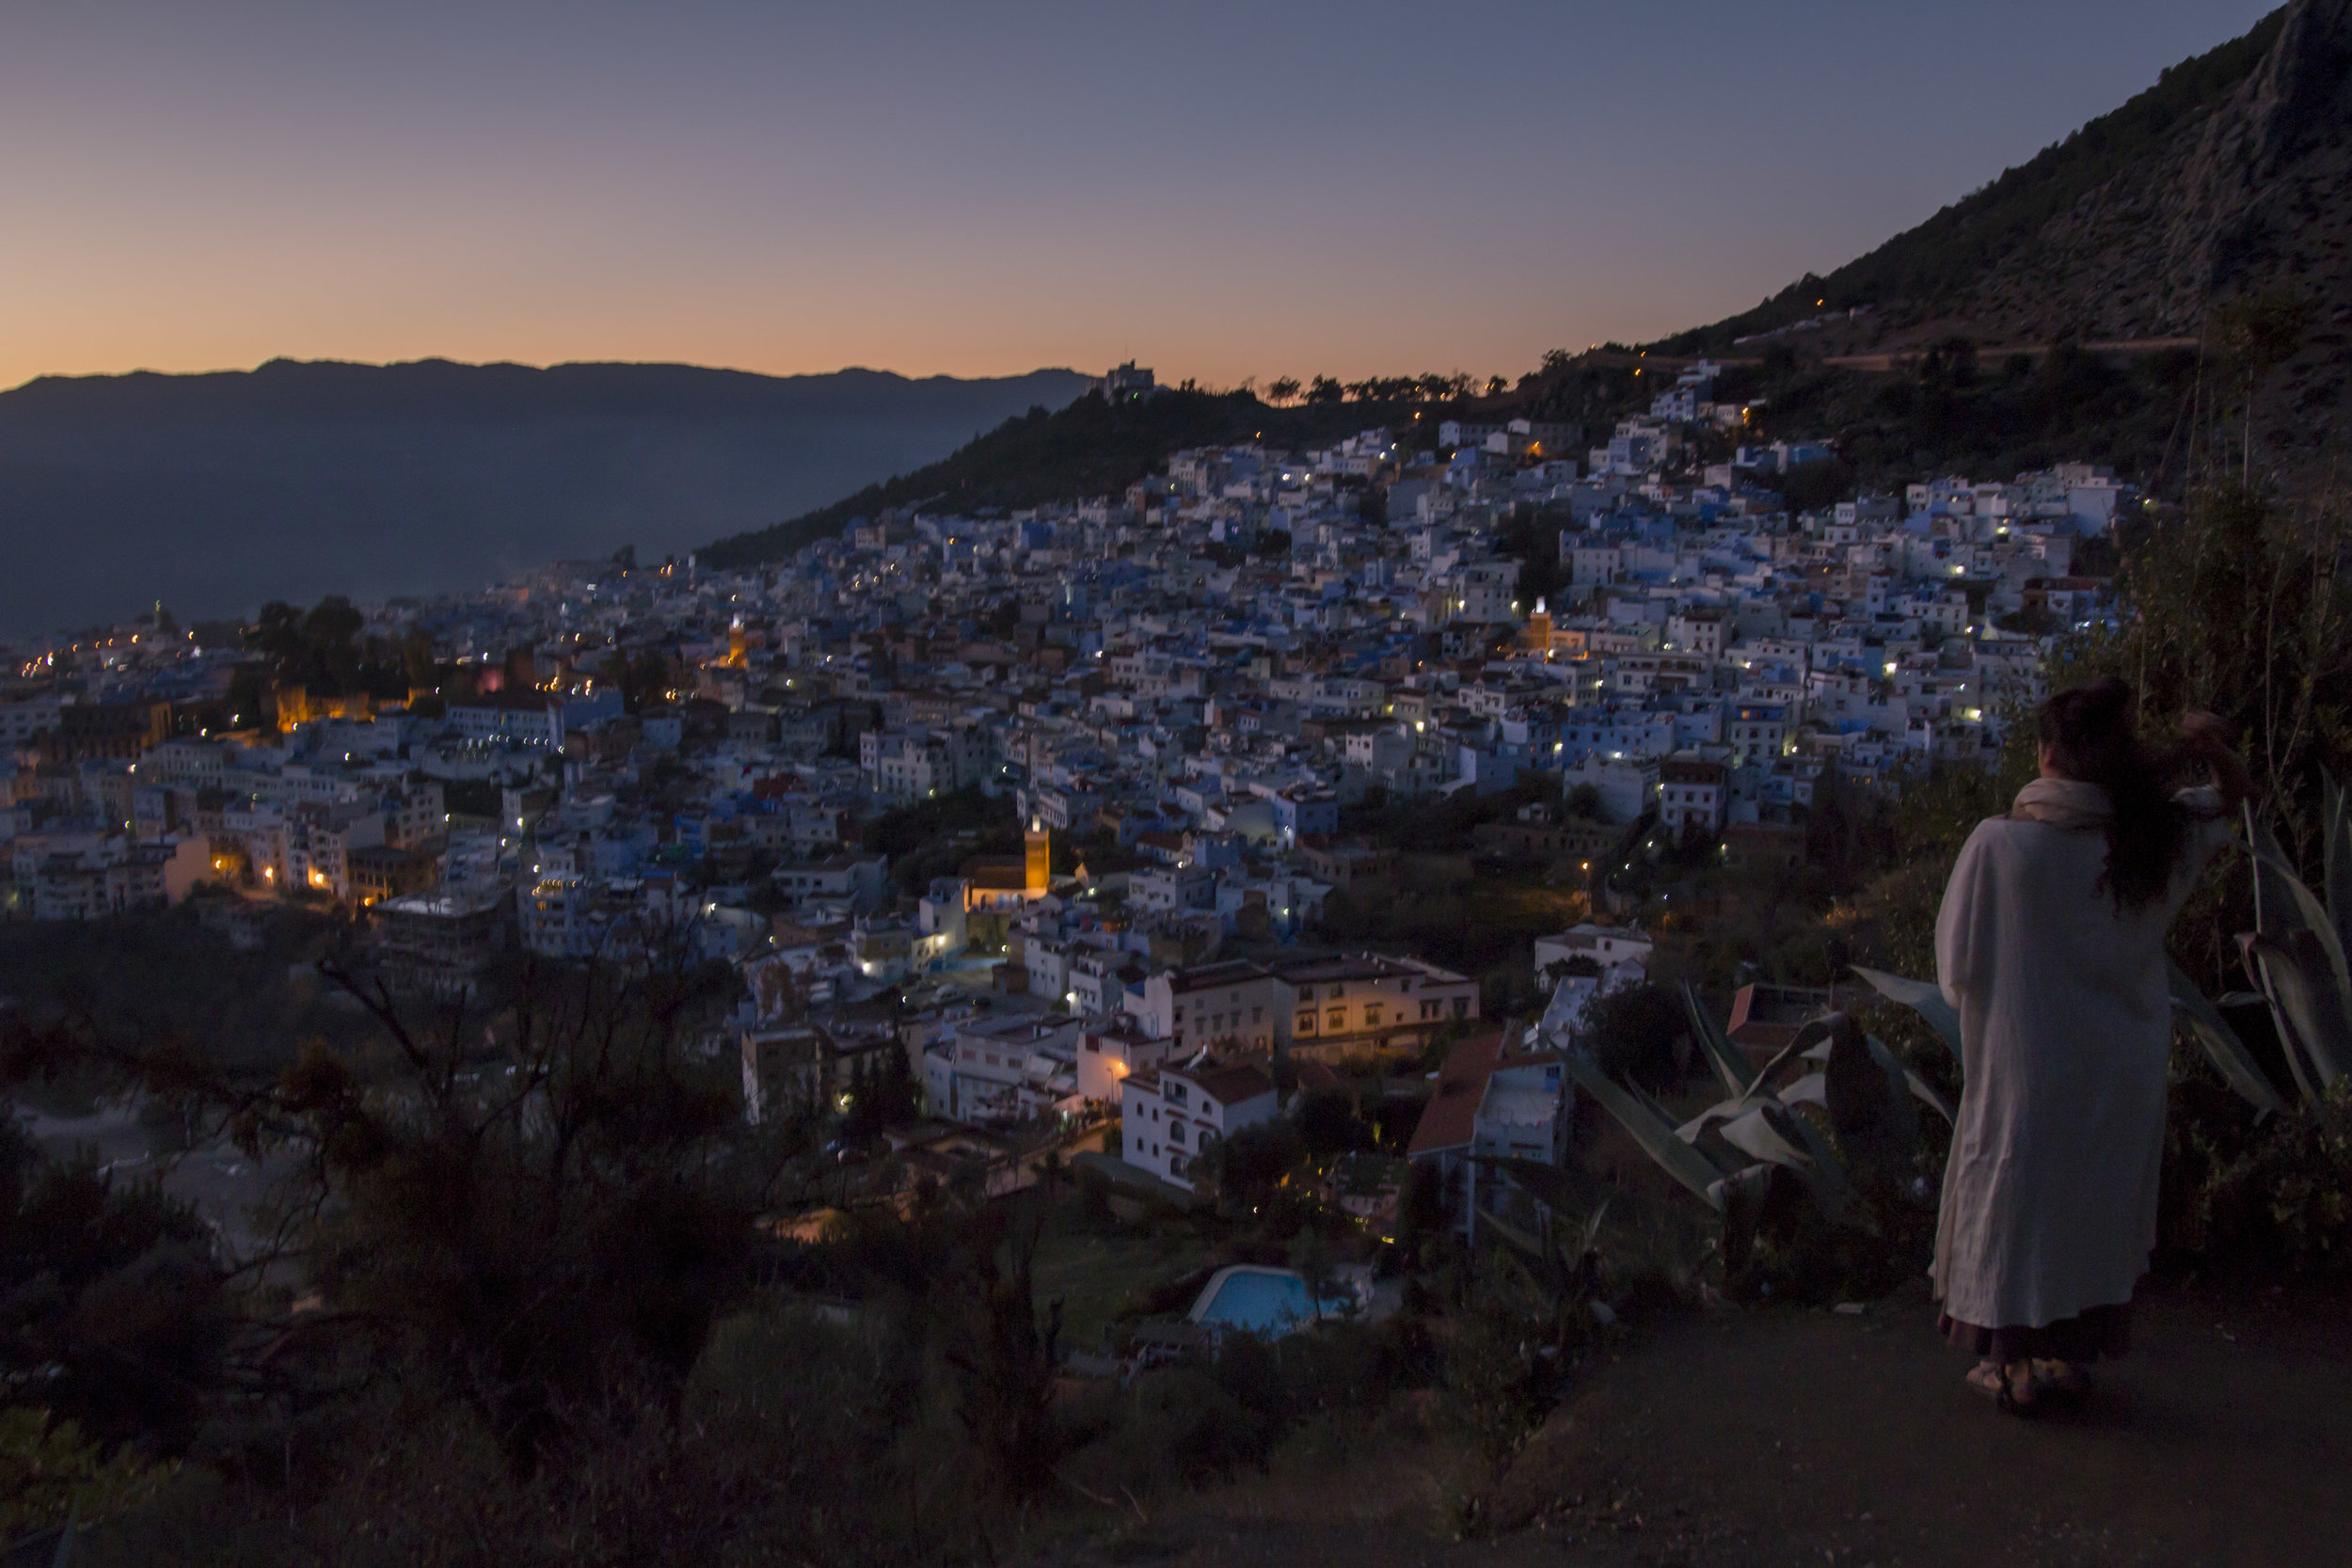 Eric recently returned from a 3 week vacation to Morocco. This is twilight in Chef Chaouen.